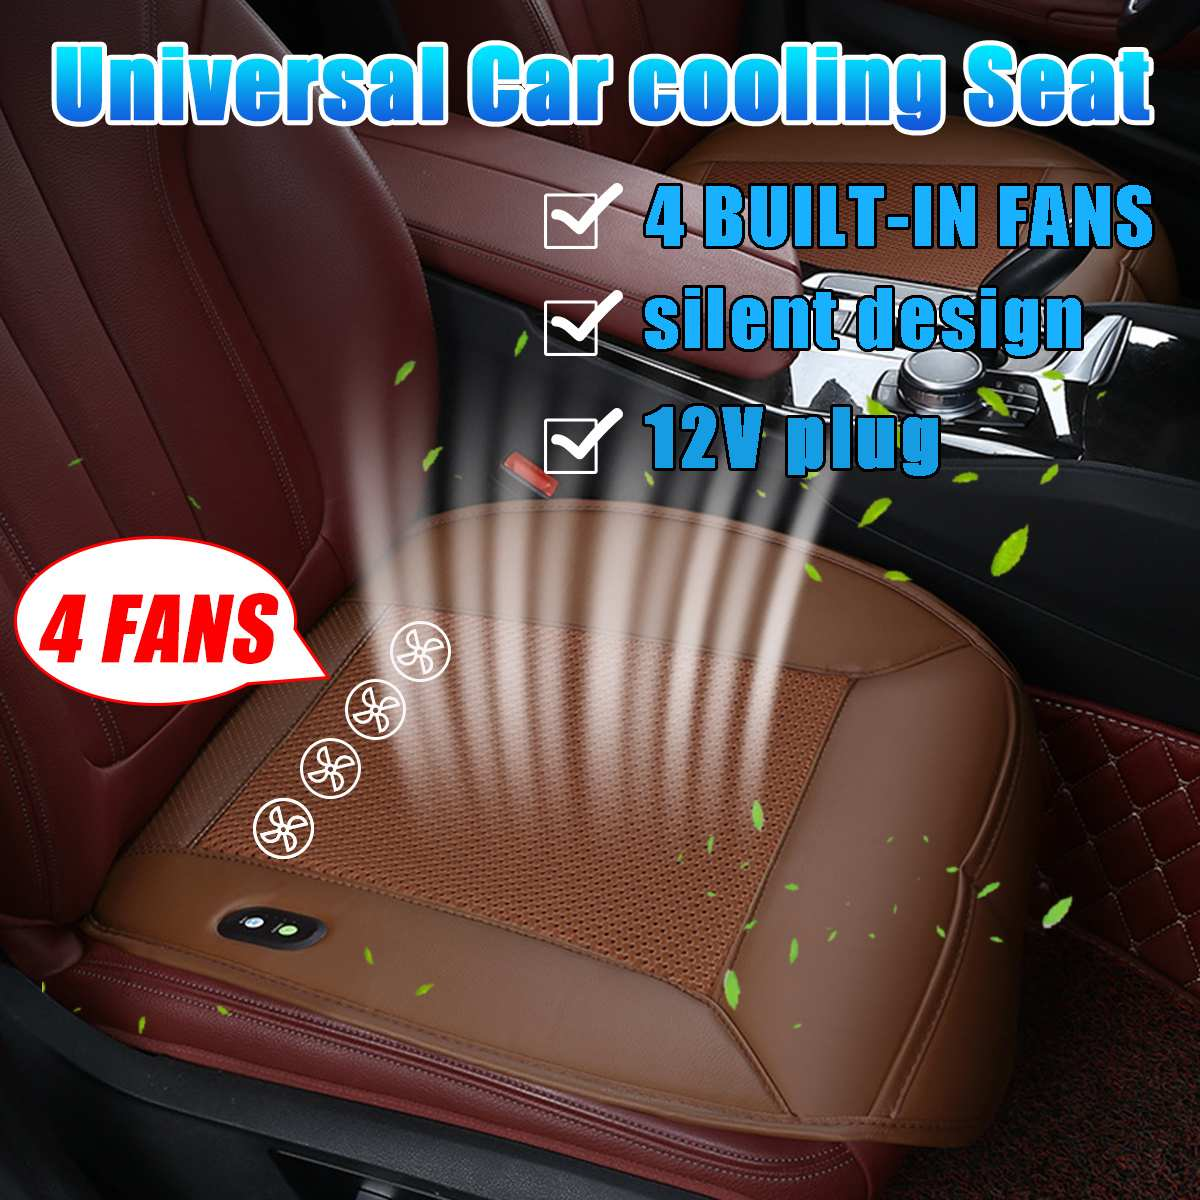 12V 4 BUILT-IN FAN Car Blowing Cool Wind Cold Air Mesh Cushion Seat Leather Cover Summer Refrigeration Cooling Ventilation Seat